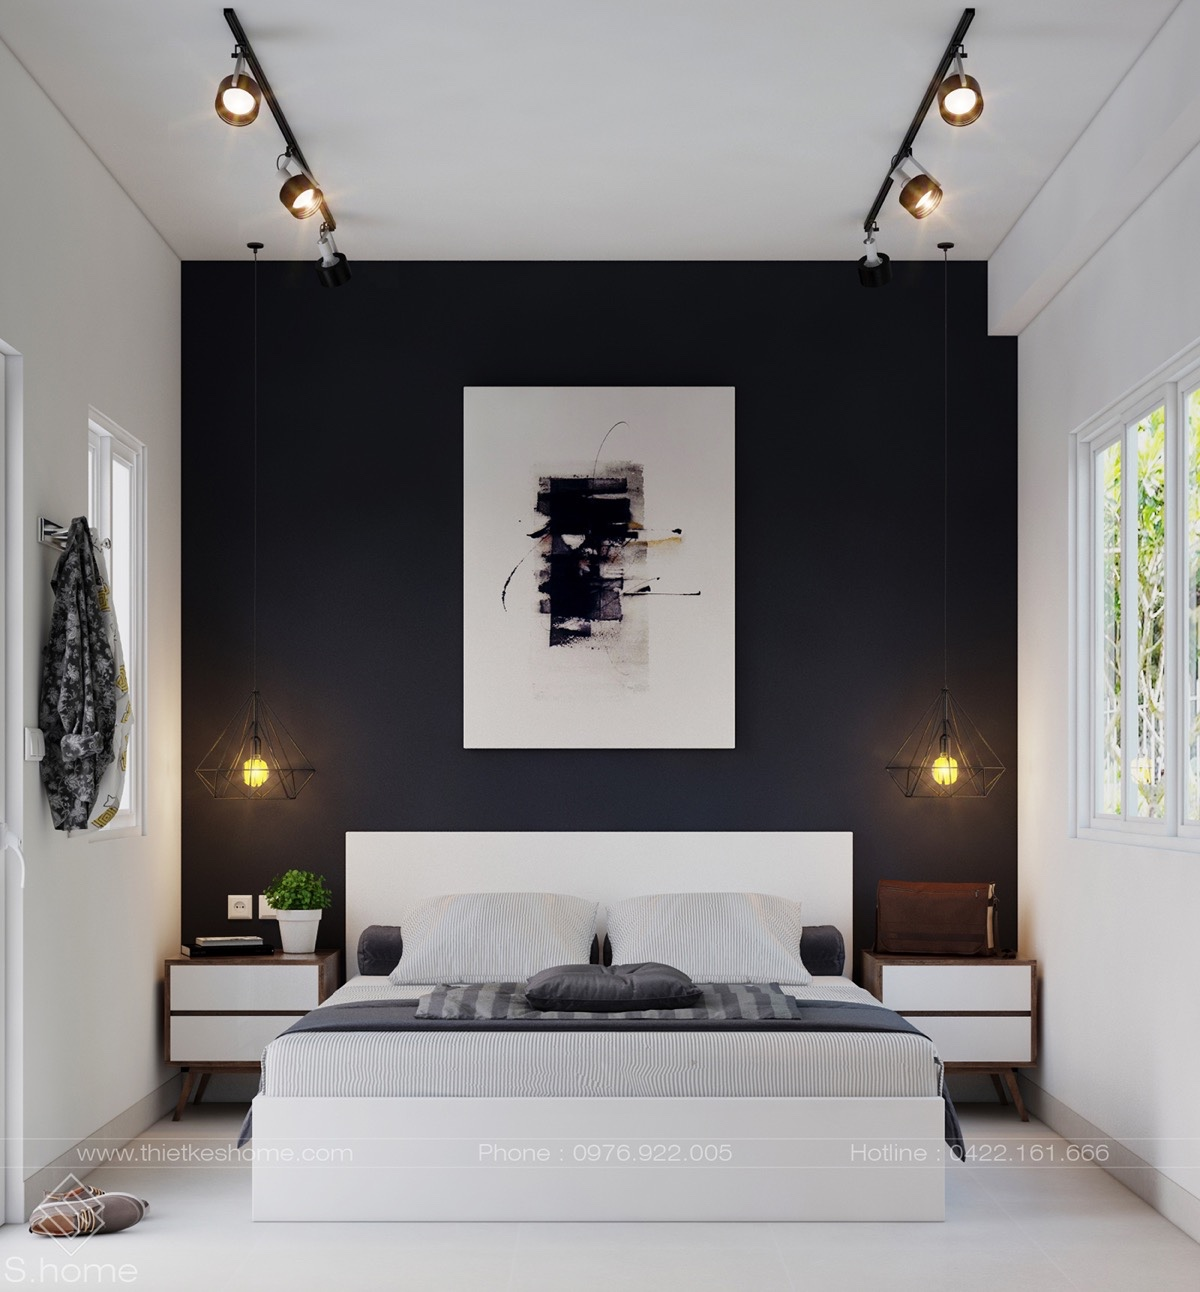 51 Beautiful Black Bedrooms With Images, Tips